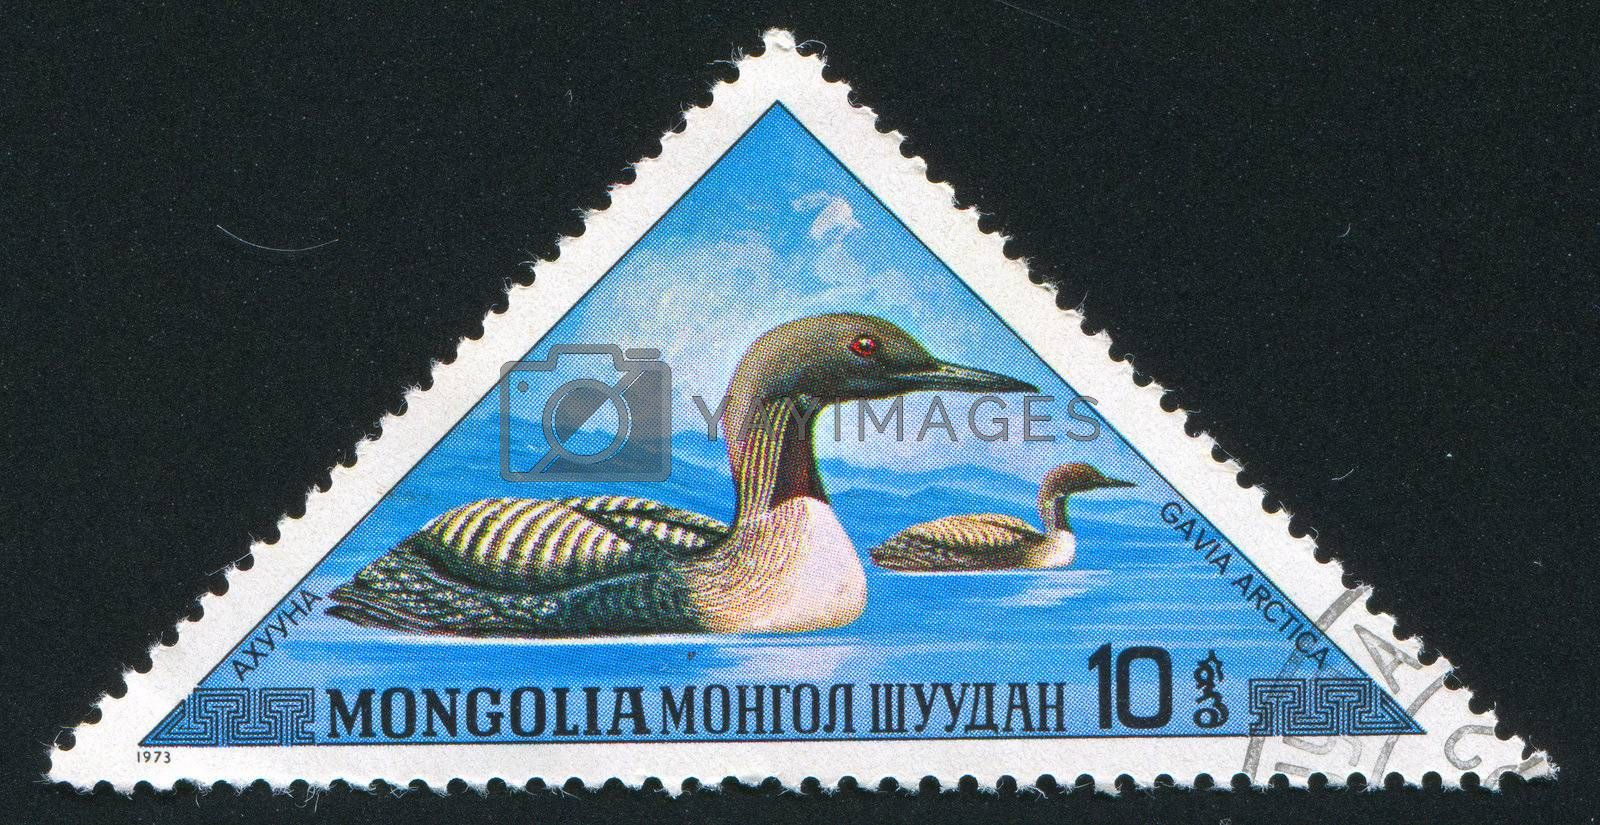 MONGOLIA - CIRCA 1973: stamp printed by Mongolia, shows duck, circa 1973.